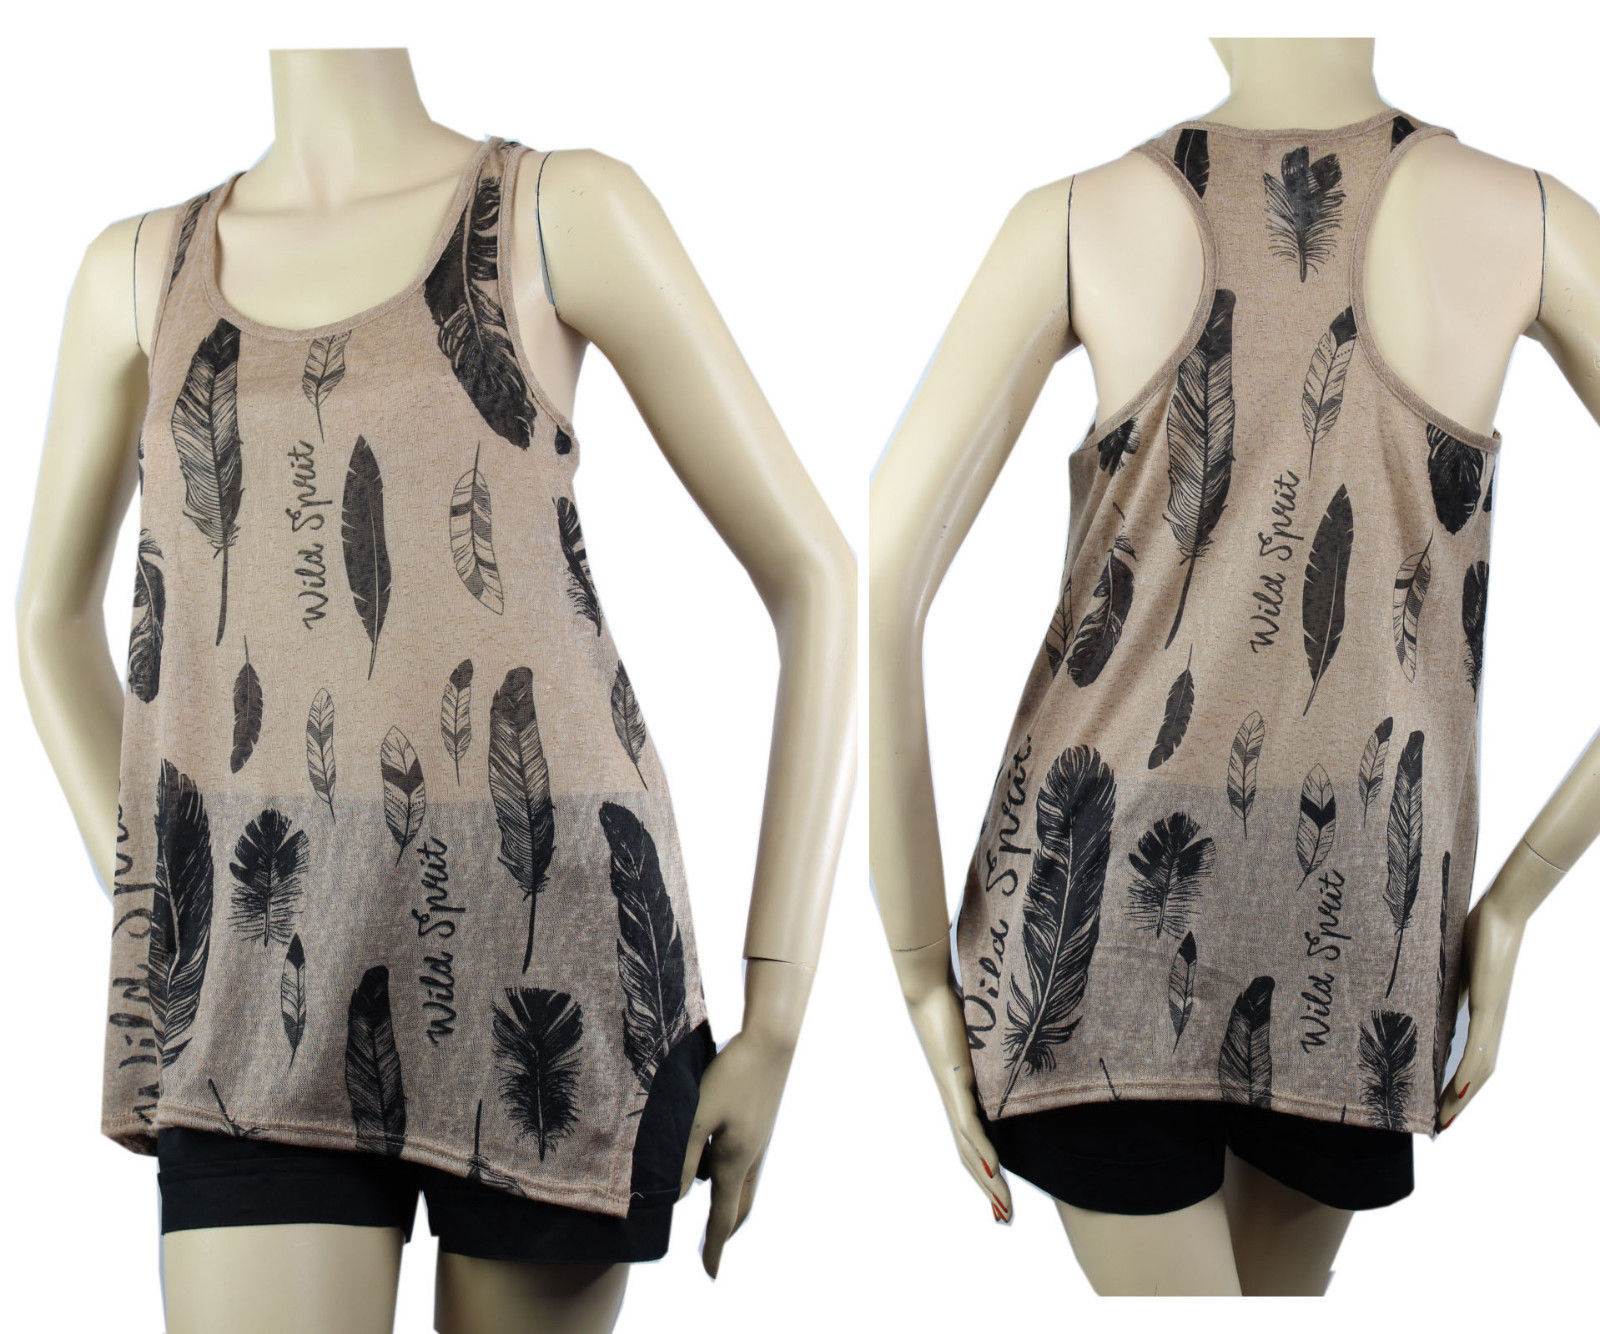 Sexy Racer Back Feather Print Layering Tank Top Stretchy Comfy Casual Shirts SML